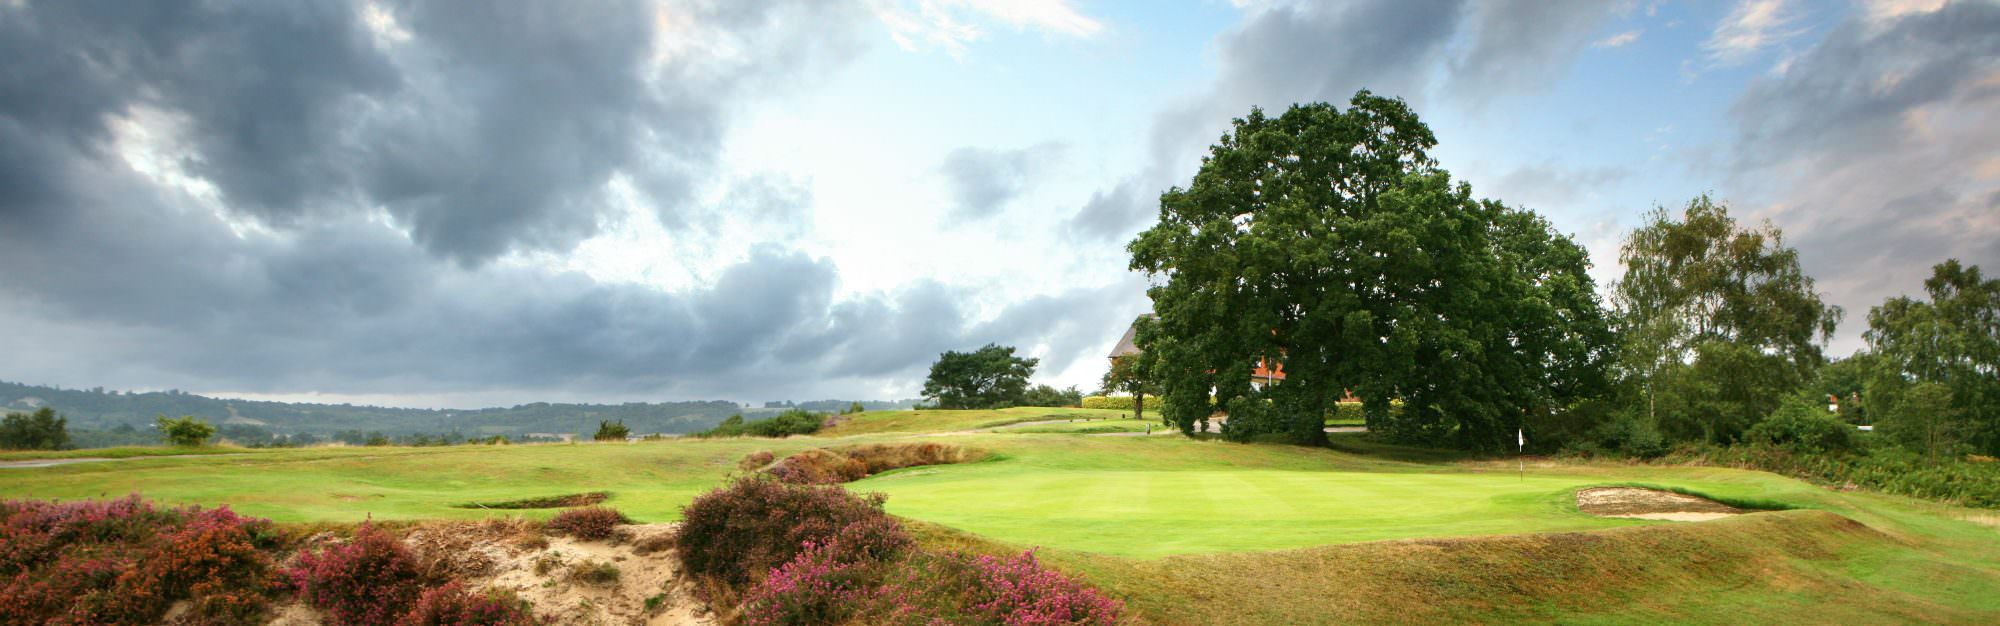 What makes a course fun? Our experts have the answers